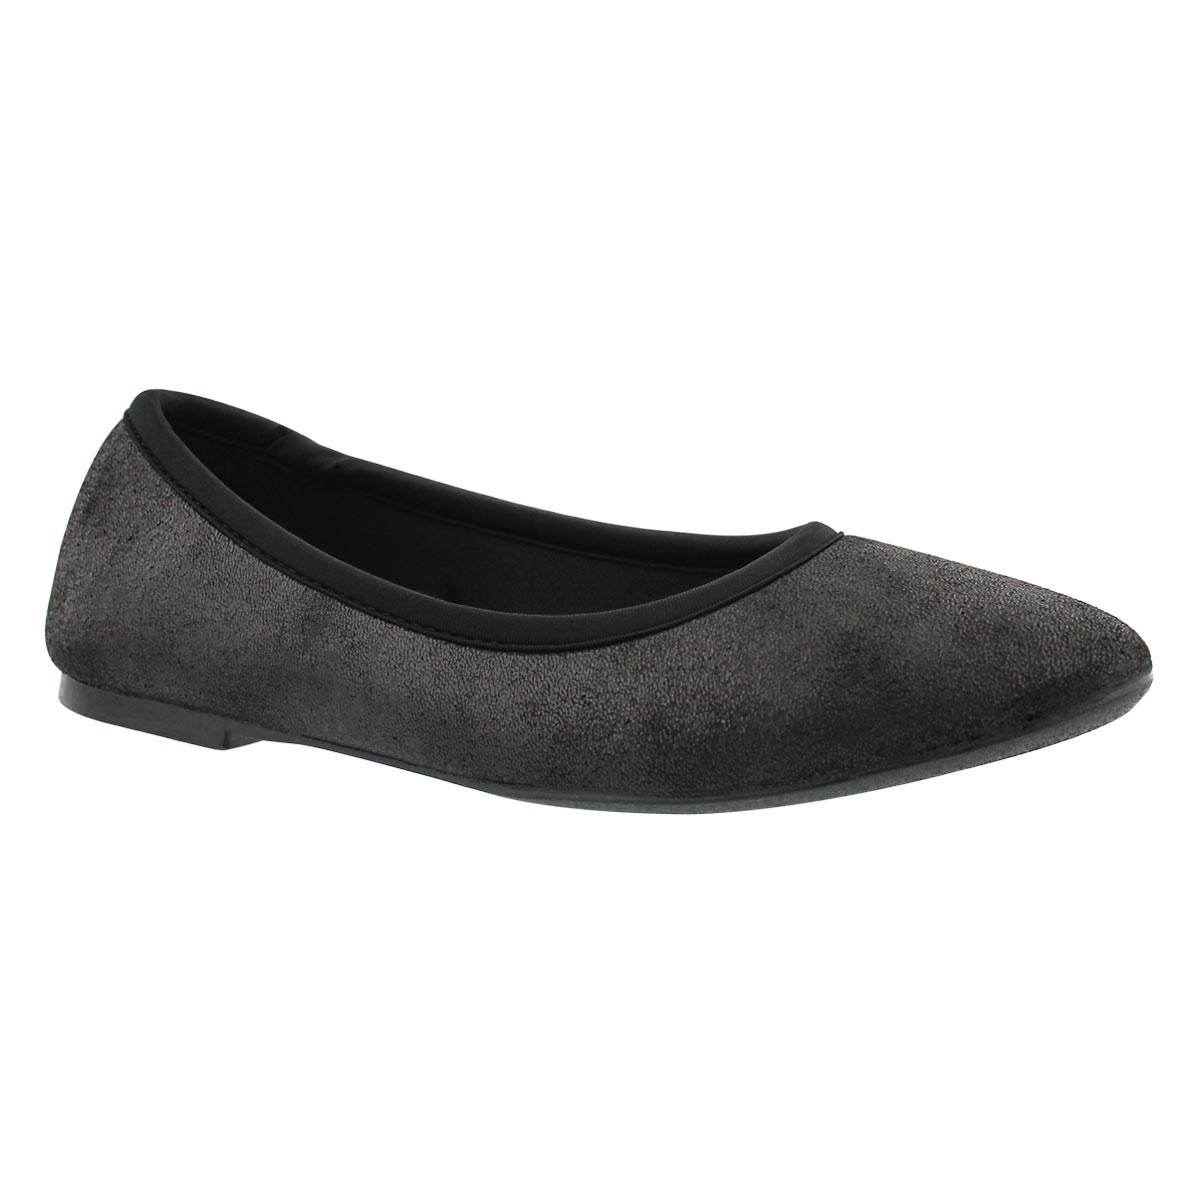 Women's CLEO SINCERE black casual flats